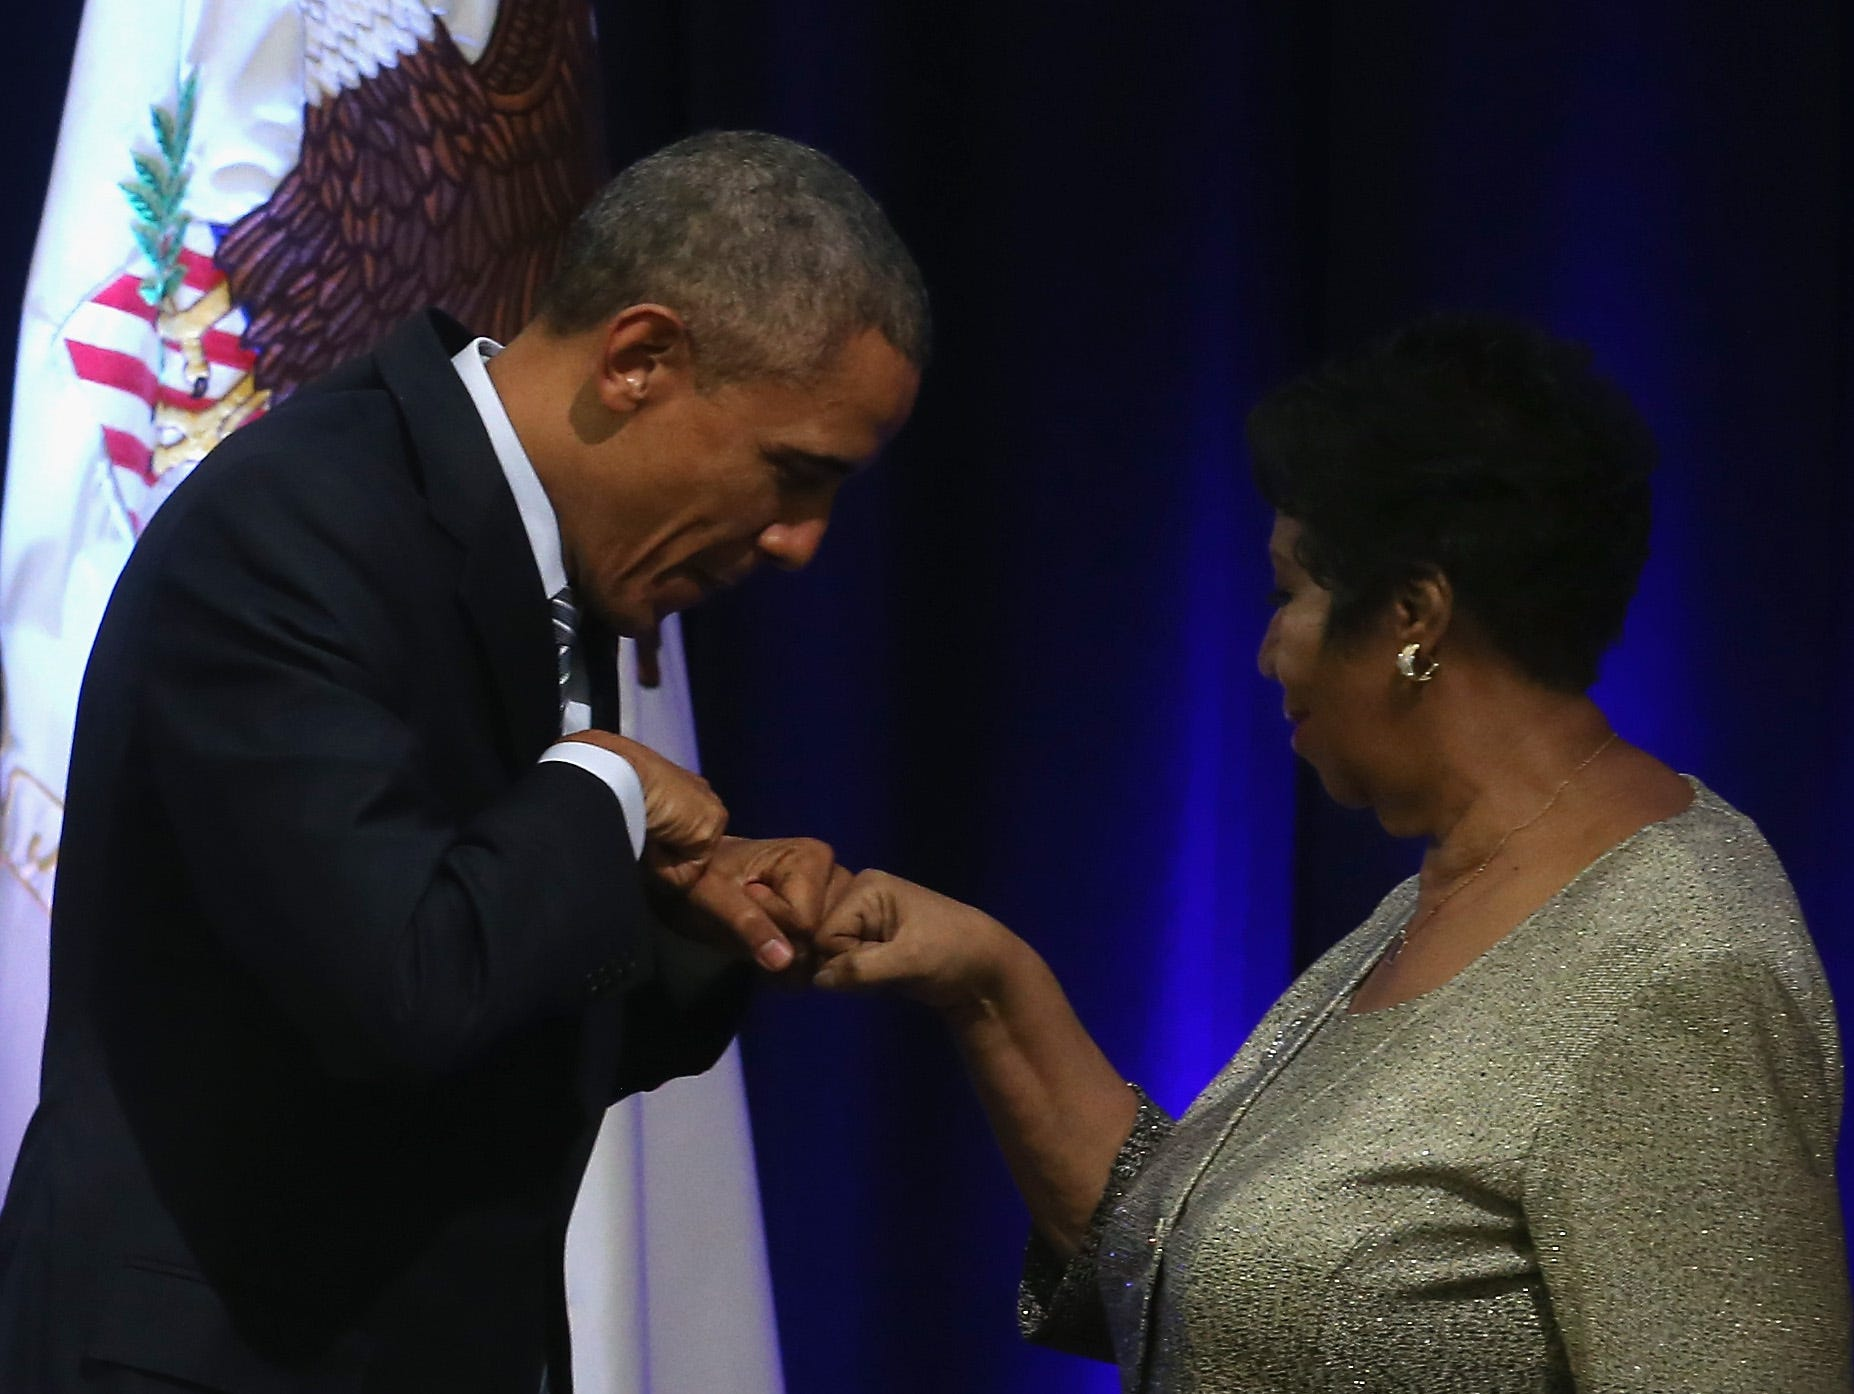 WASHINGTON, DC - FEBRUARY 27: US President Barack Obama fist bumps with singer Aretha Franklin who sung during a farwell ceremony for Attorney General Eric Holder at the Justice Department February 27, 2015 in Washington, DC. The ceremony was held to unveil the Attorney Generals official portrait and commemorate his tenure before his expected departure from the department after more than six years of service. (Photo by Mark Wilson/Getty Images)